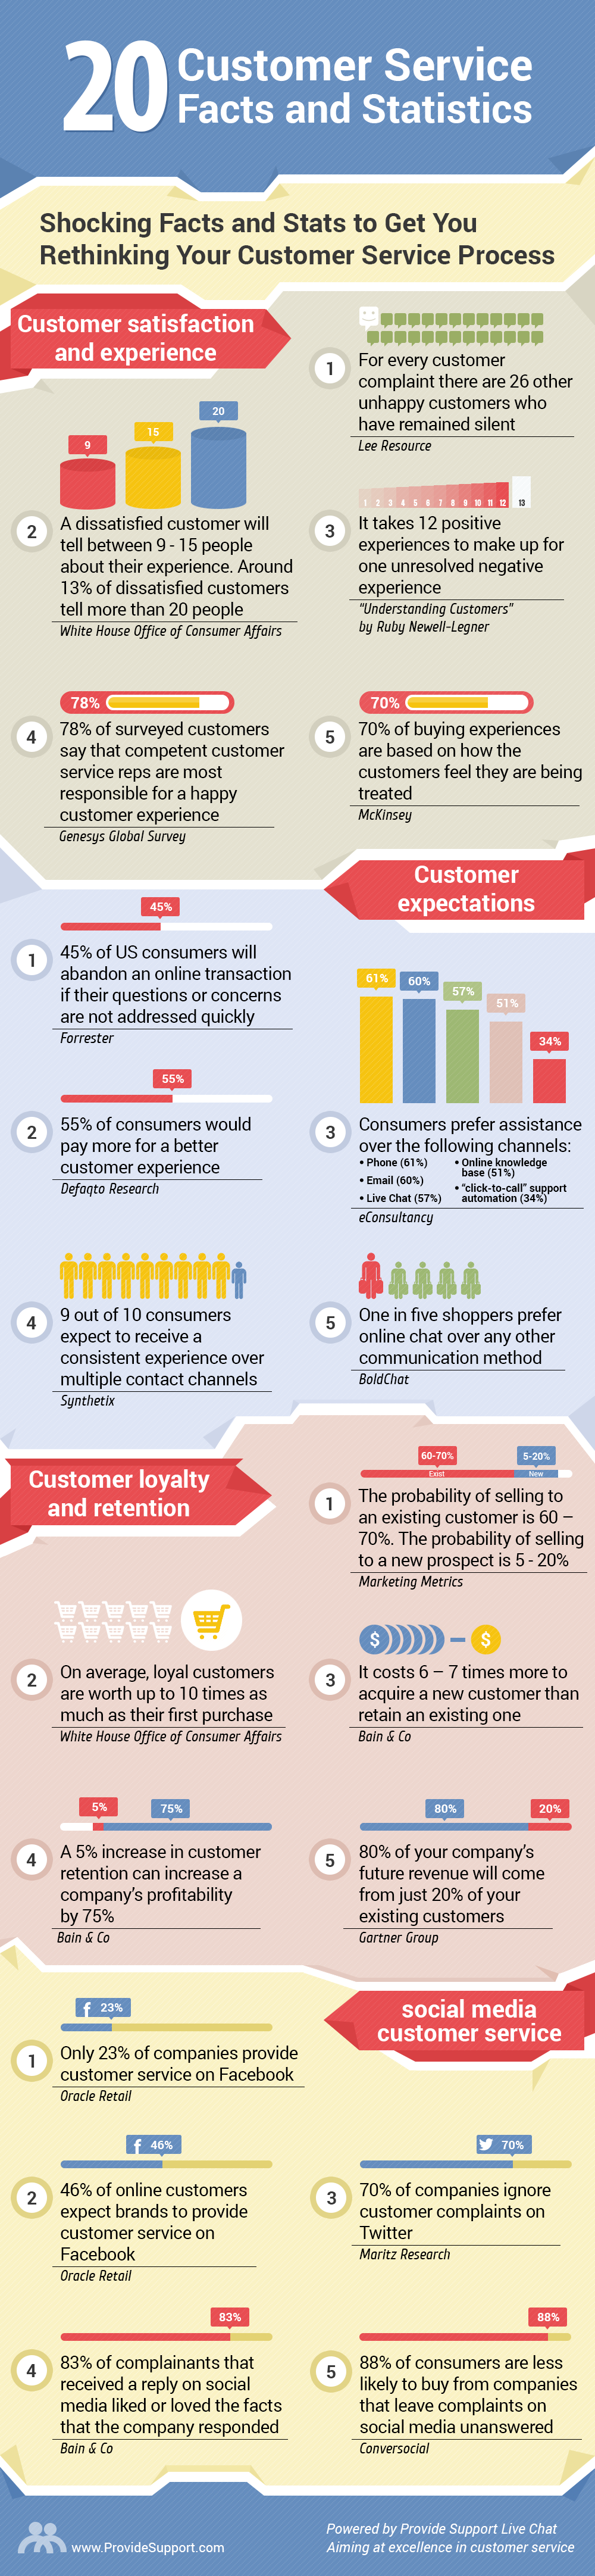 20 Customer Service Facts and Statistics